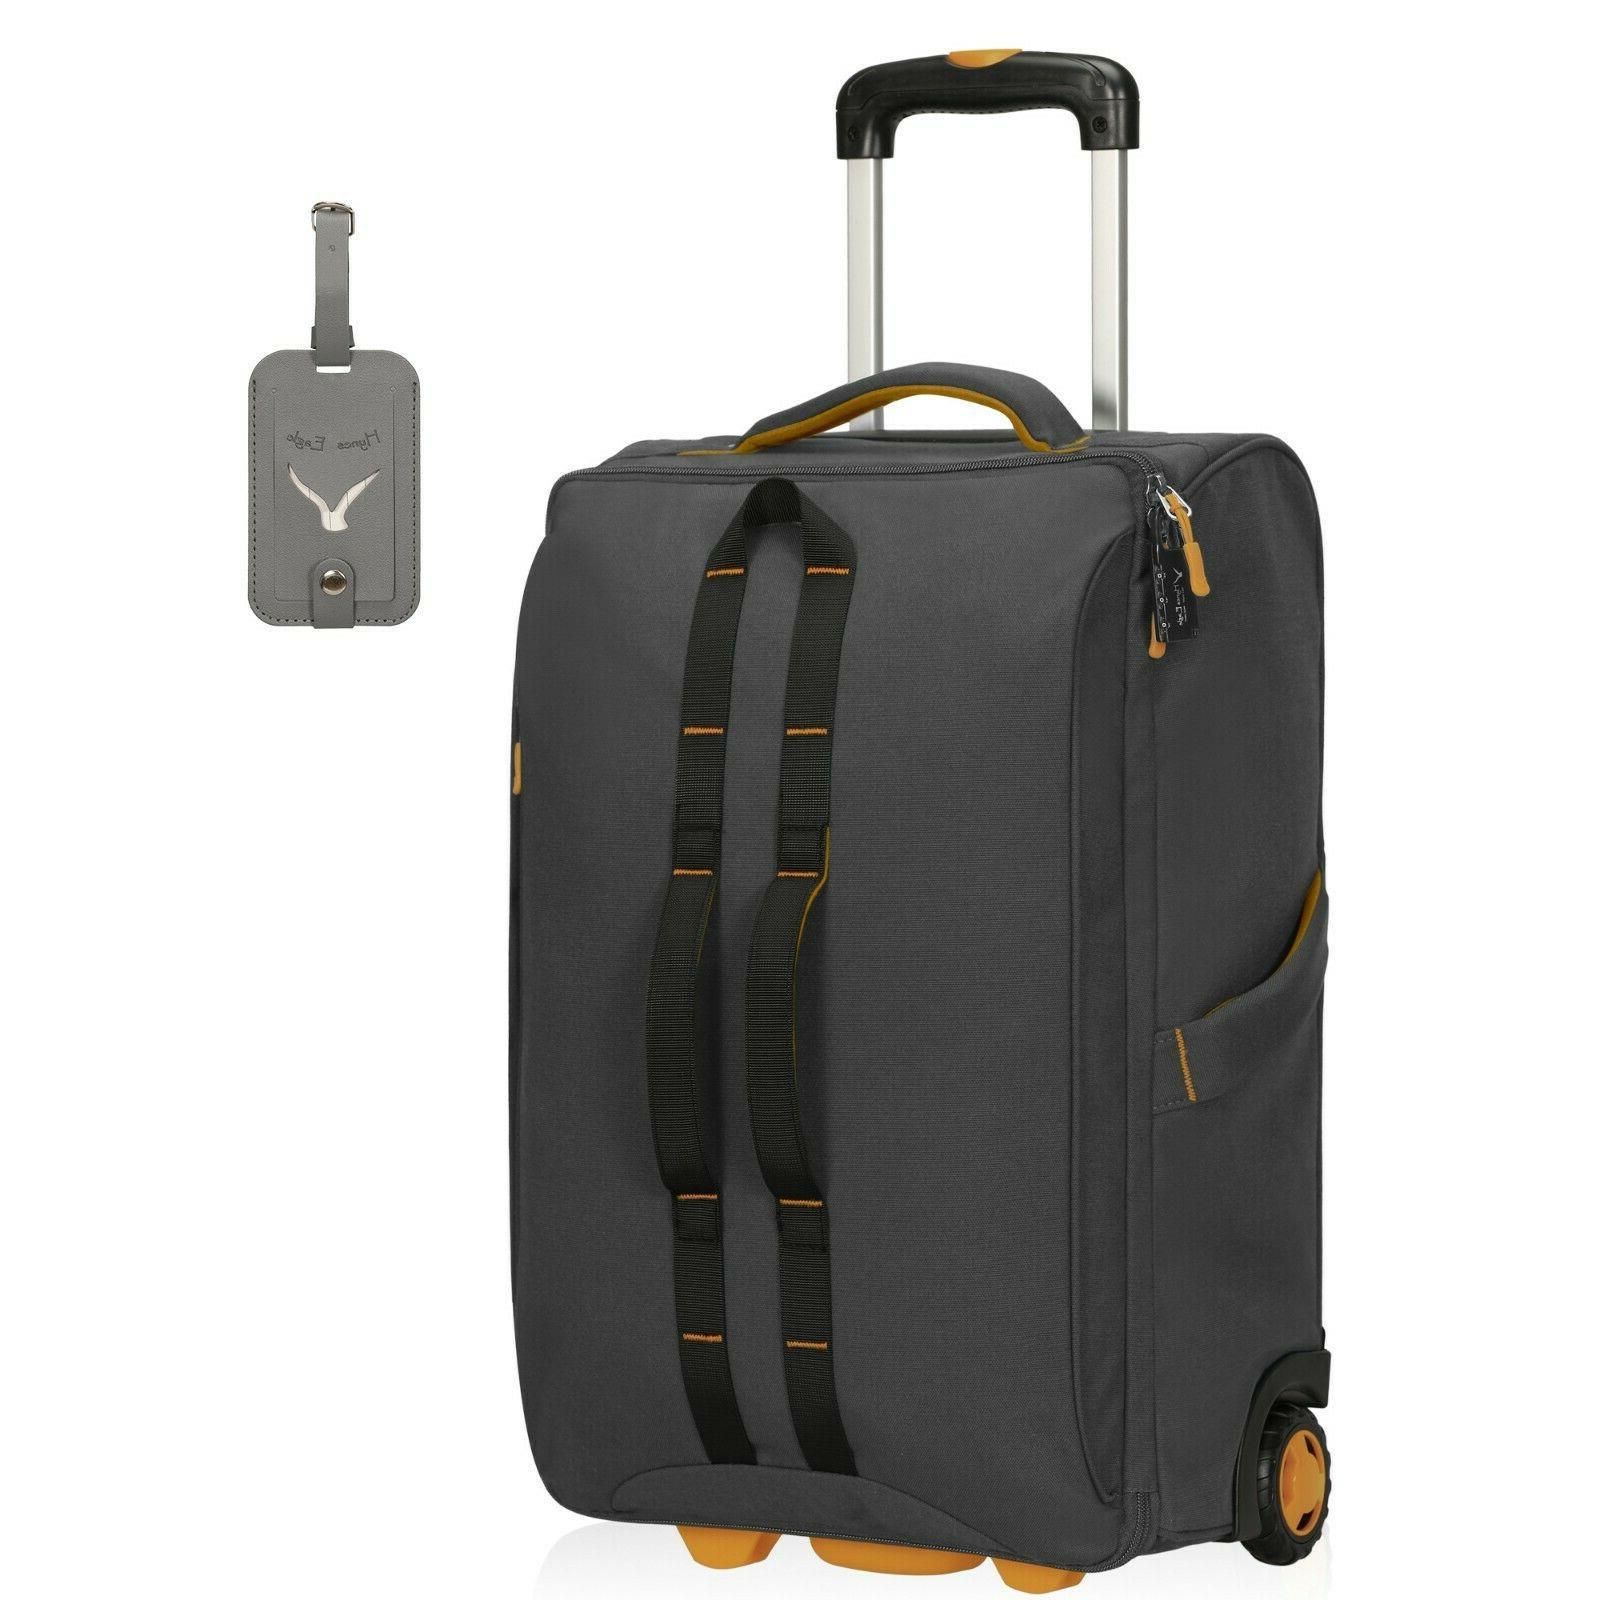 Carry on Luggage Wheeled Checked